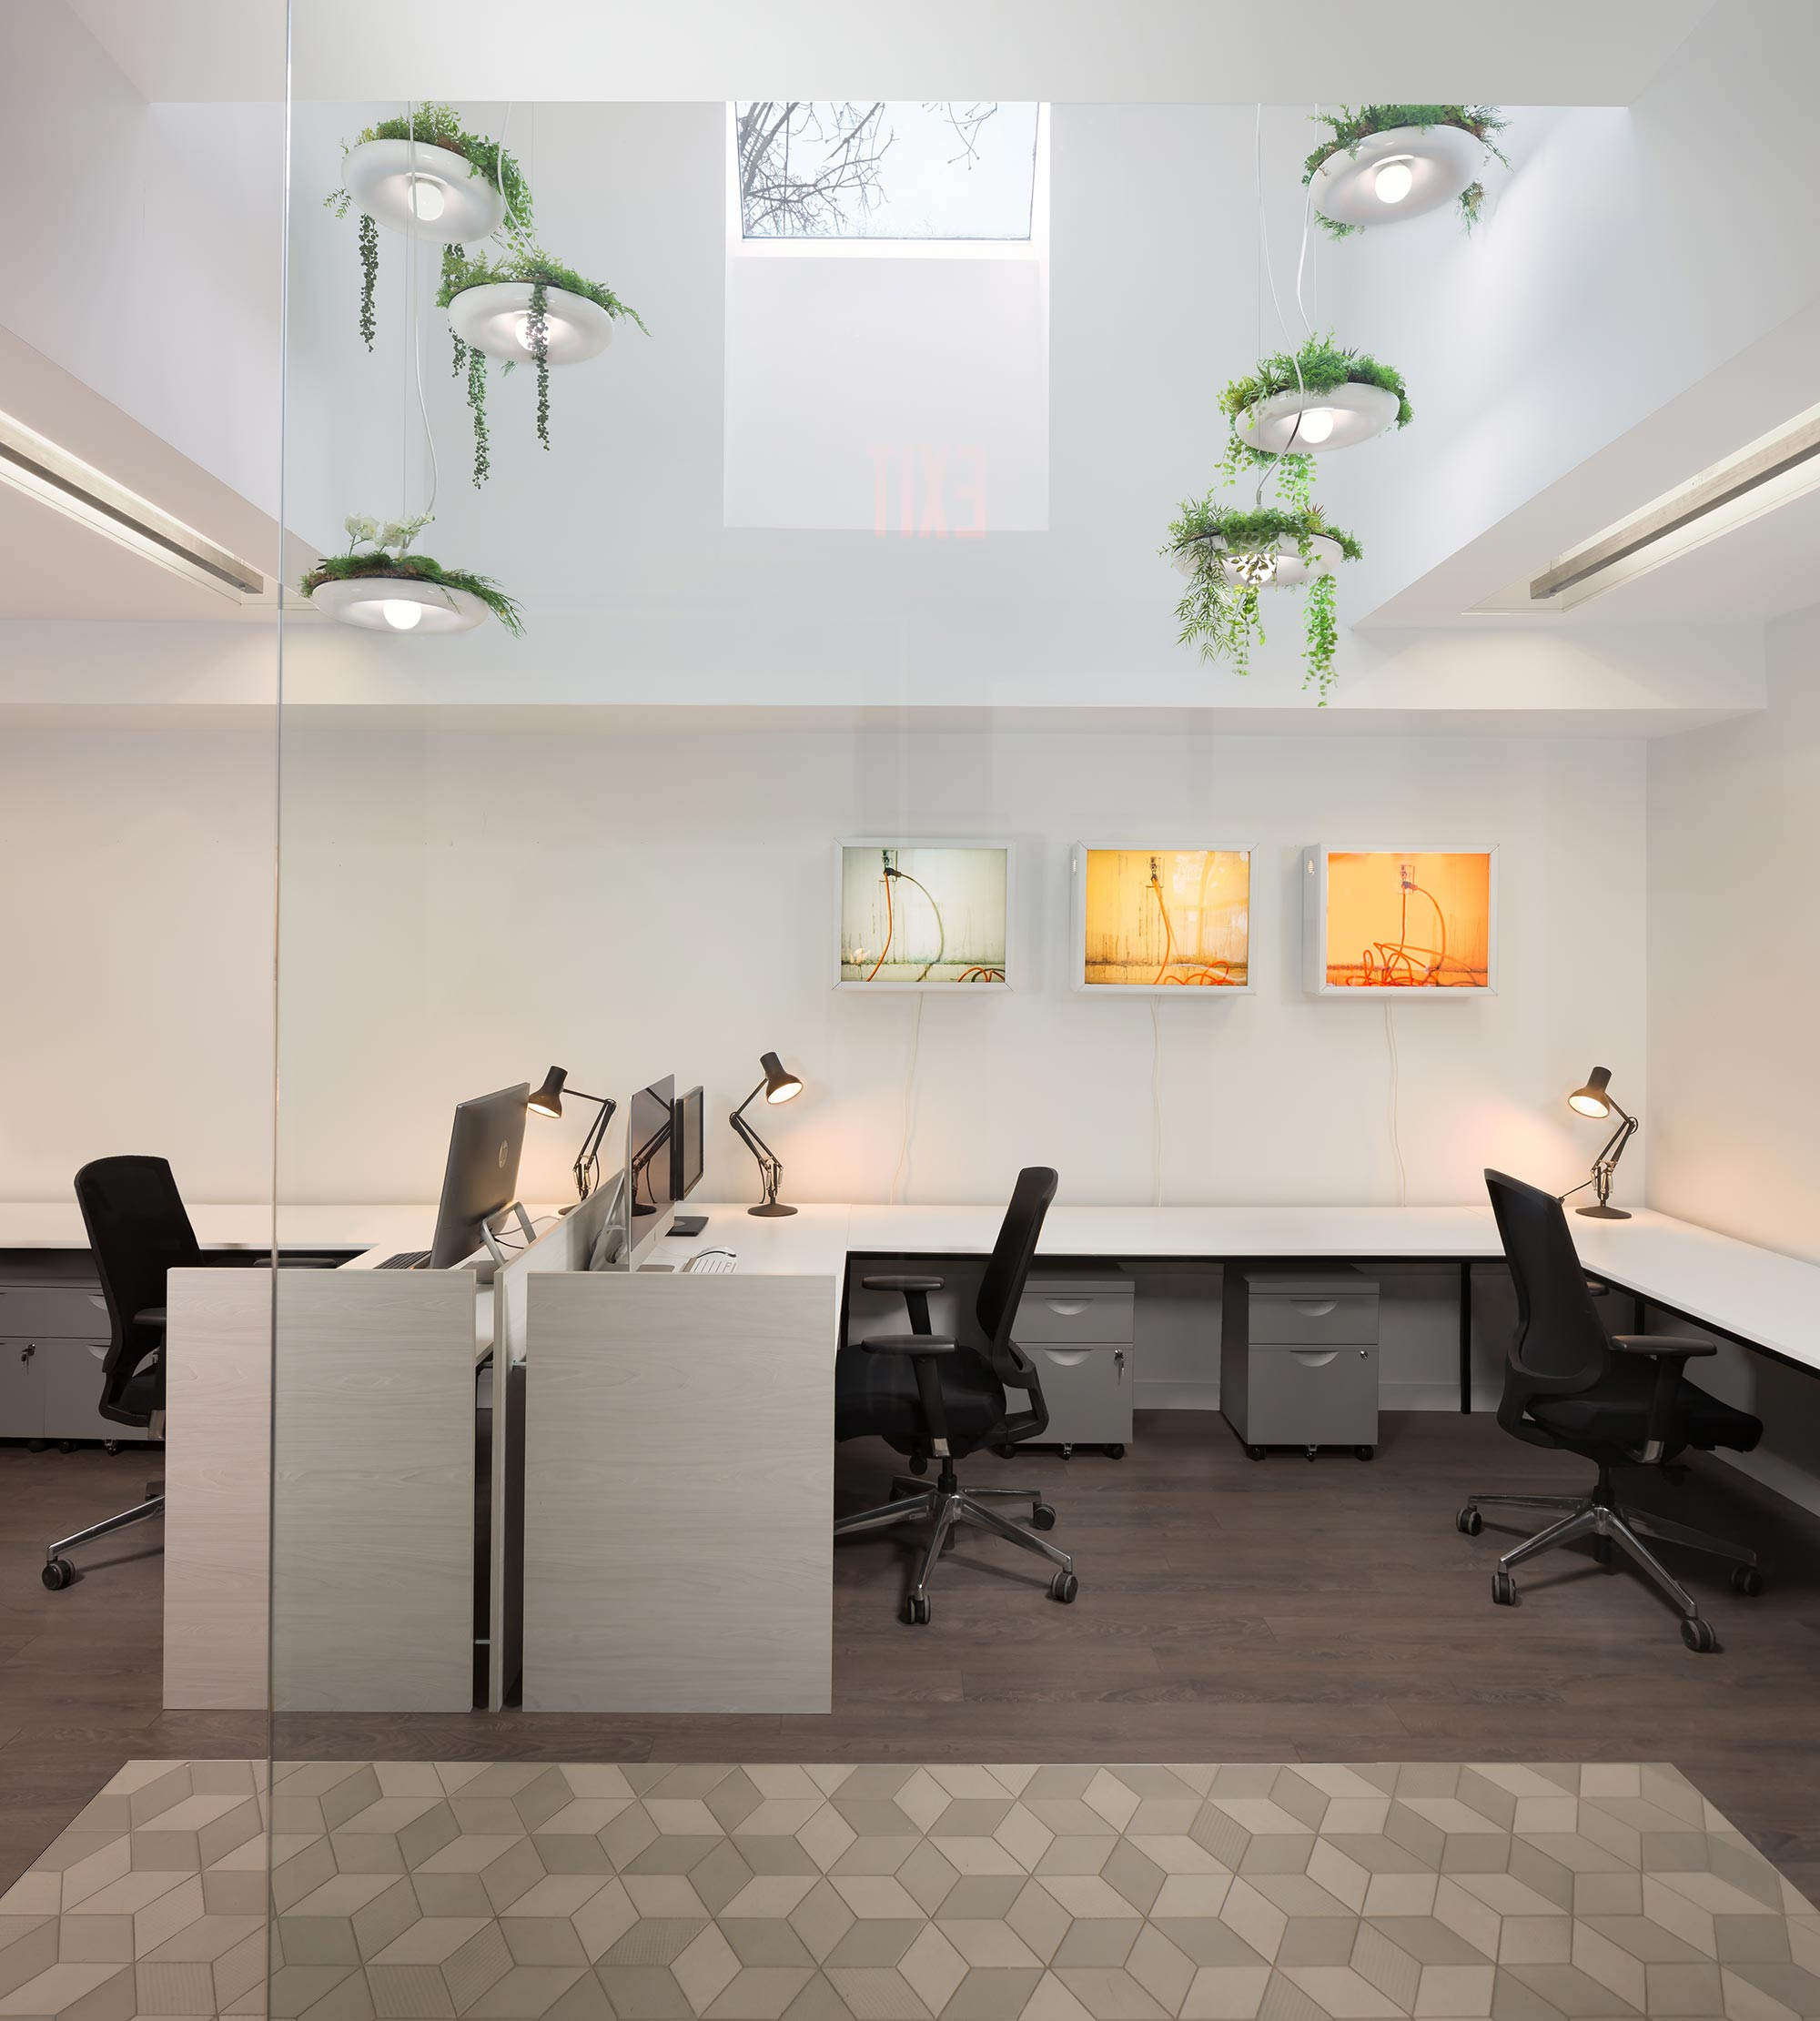 002-Mi-Fold-Co-working-Space-High-Res.jpg